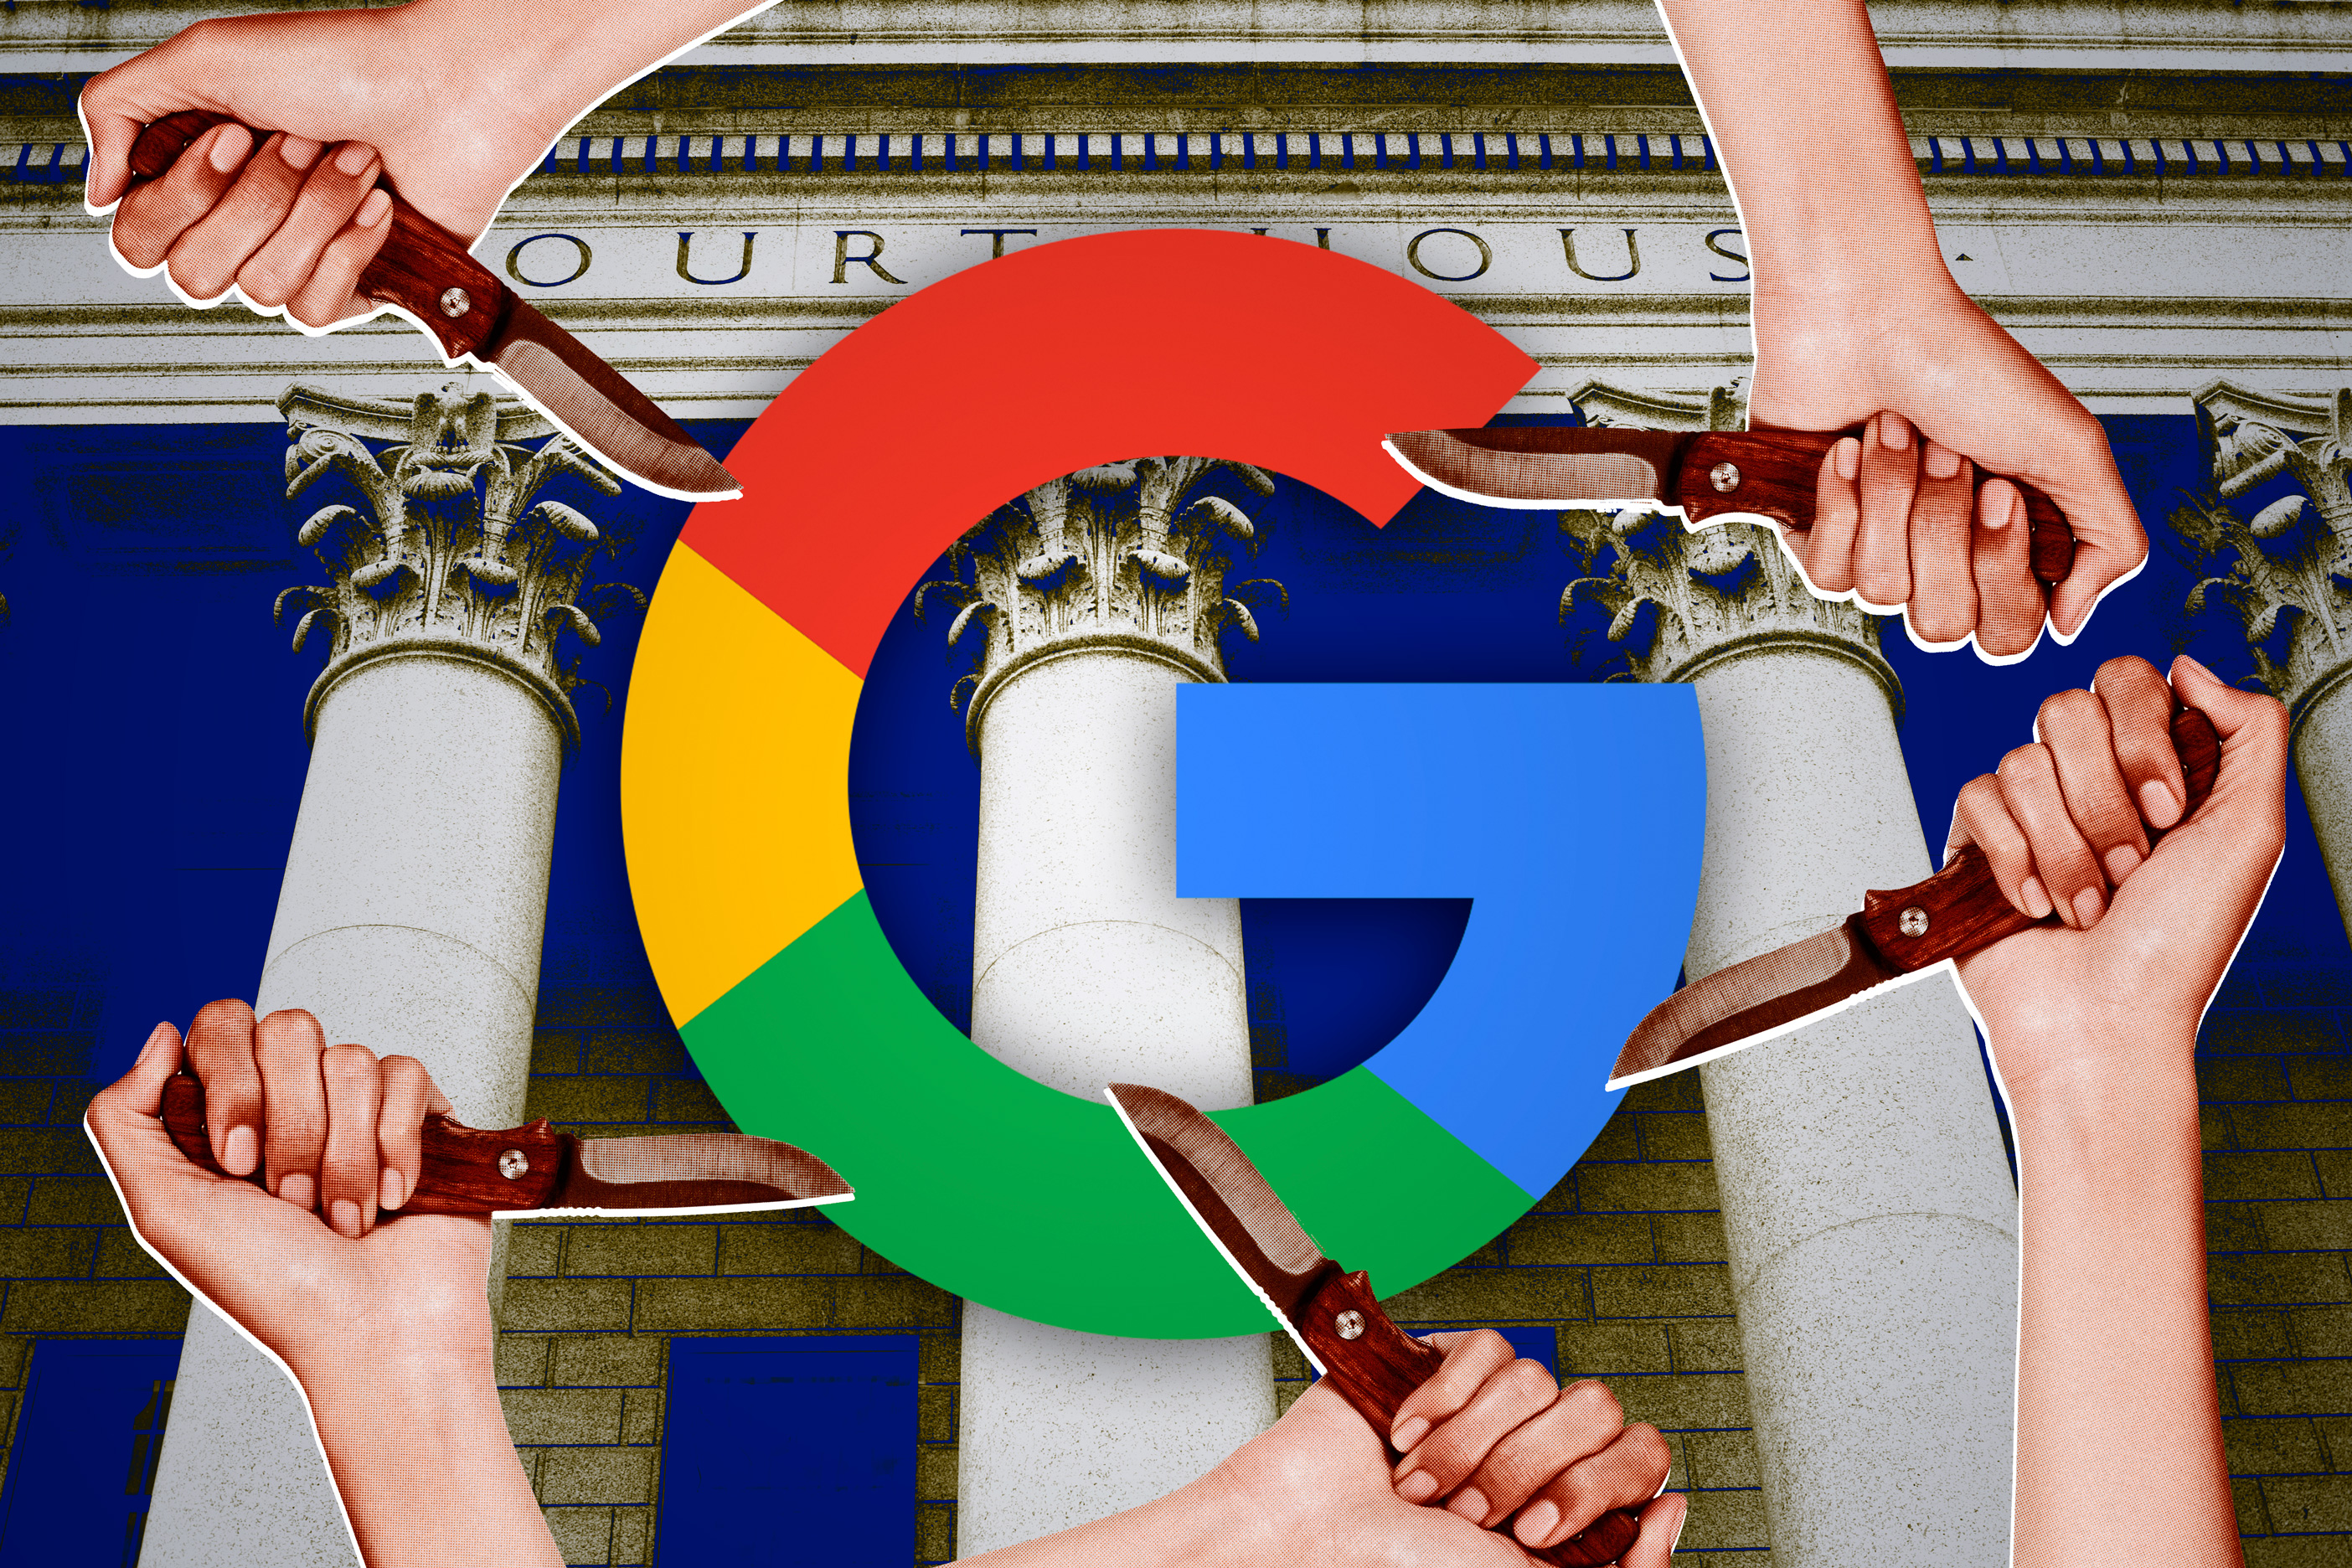 Google's enemies sharpen their knives as DOJ opens antitrust probe